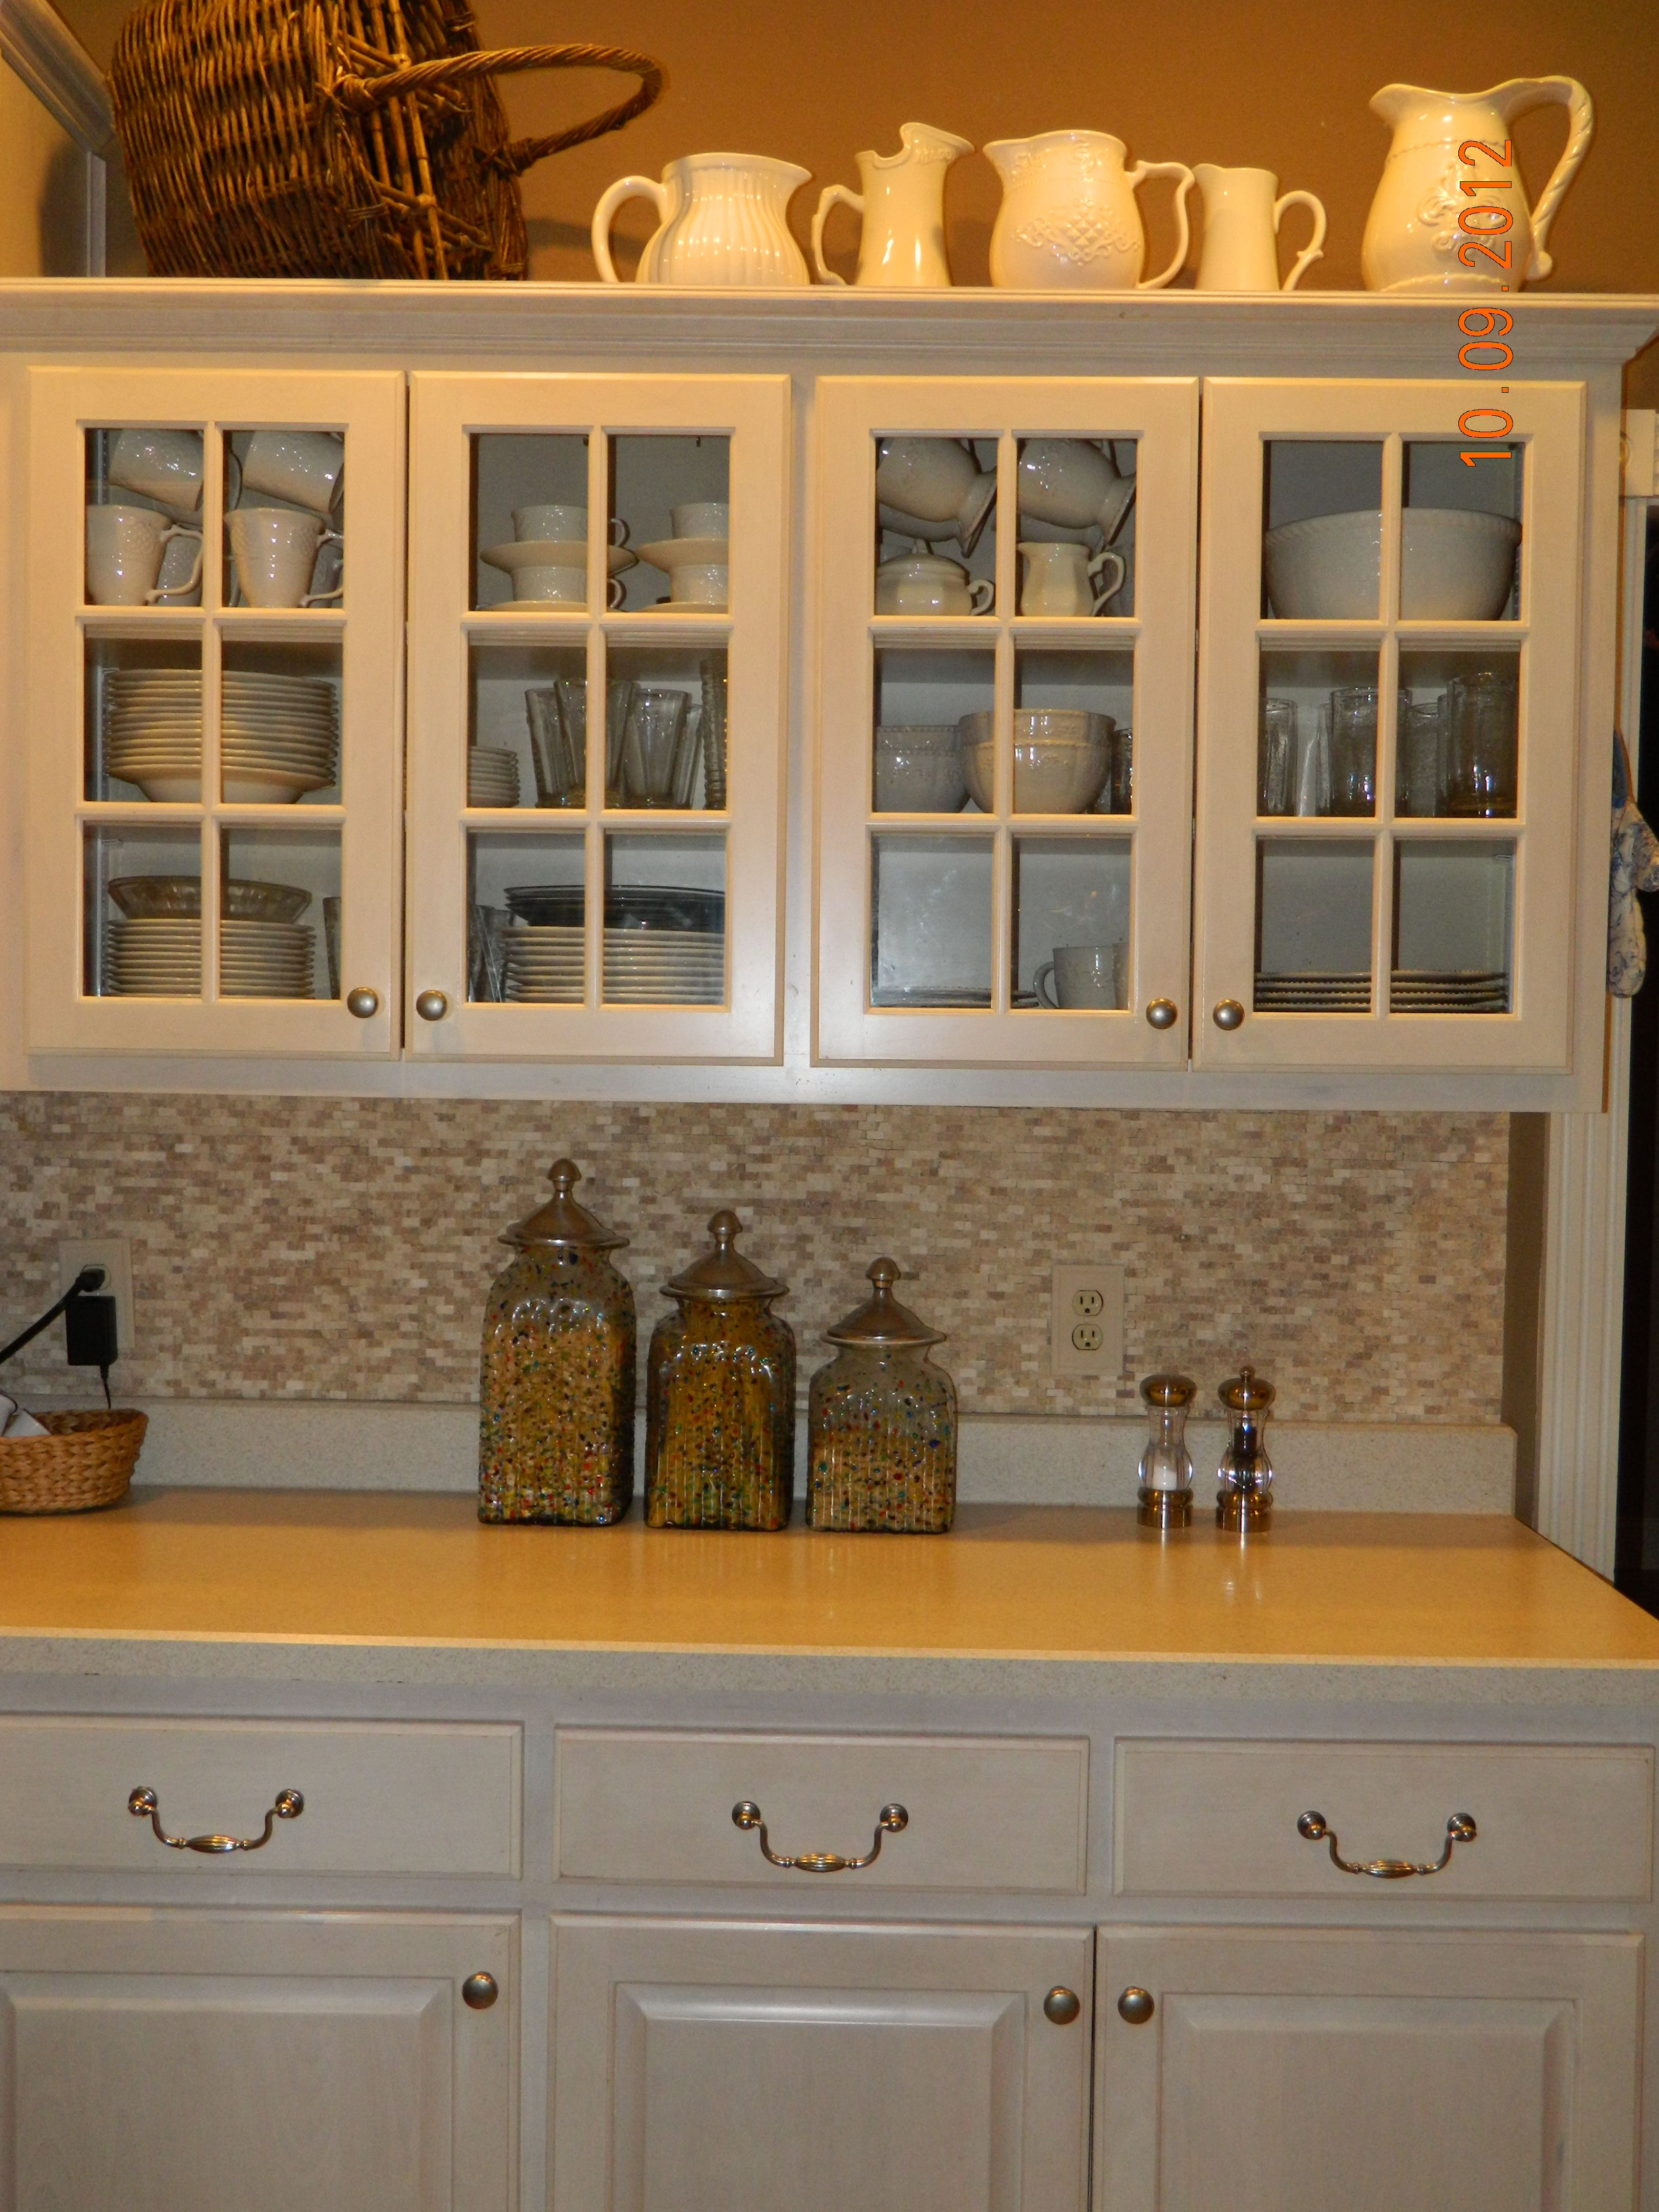 8655bf97a6e0b9d09a301c790b8994c3 Painted Cabinet Kitchen Remodel Ideas on painted paneling remodel, kitchen designs remodel, kitchen island remodel, traditional kitchen remodel,